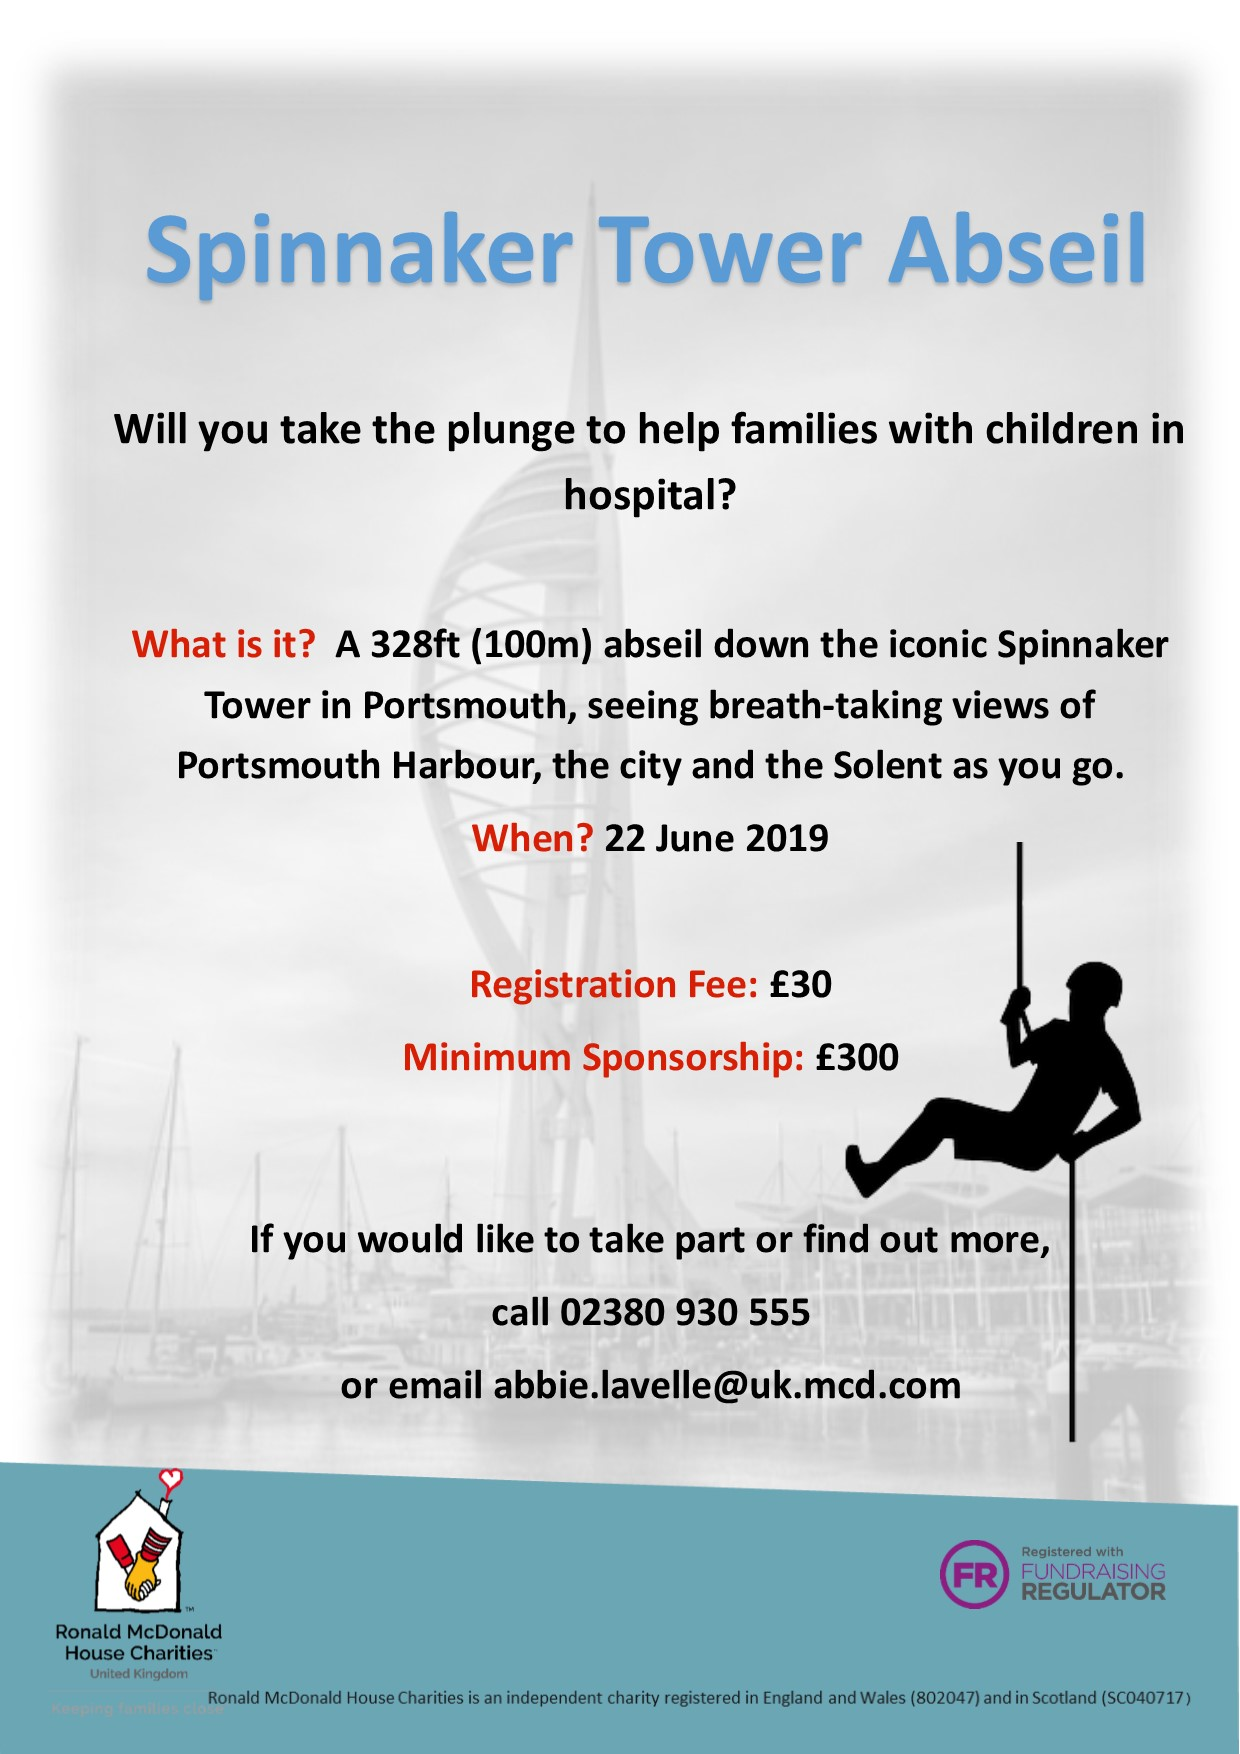 Spinnaker Tower Abseil for Ronald McDonald House Charities